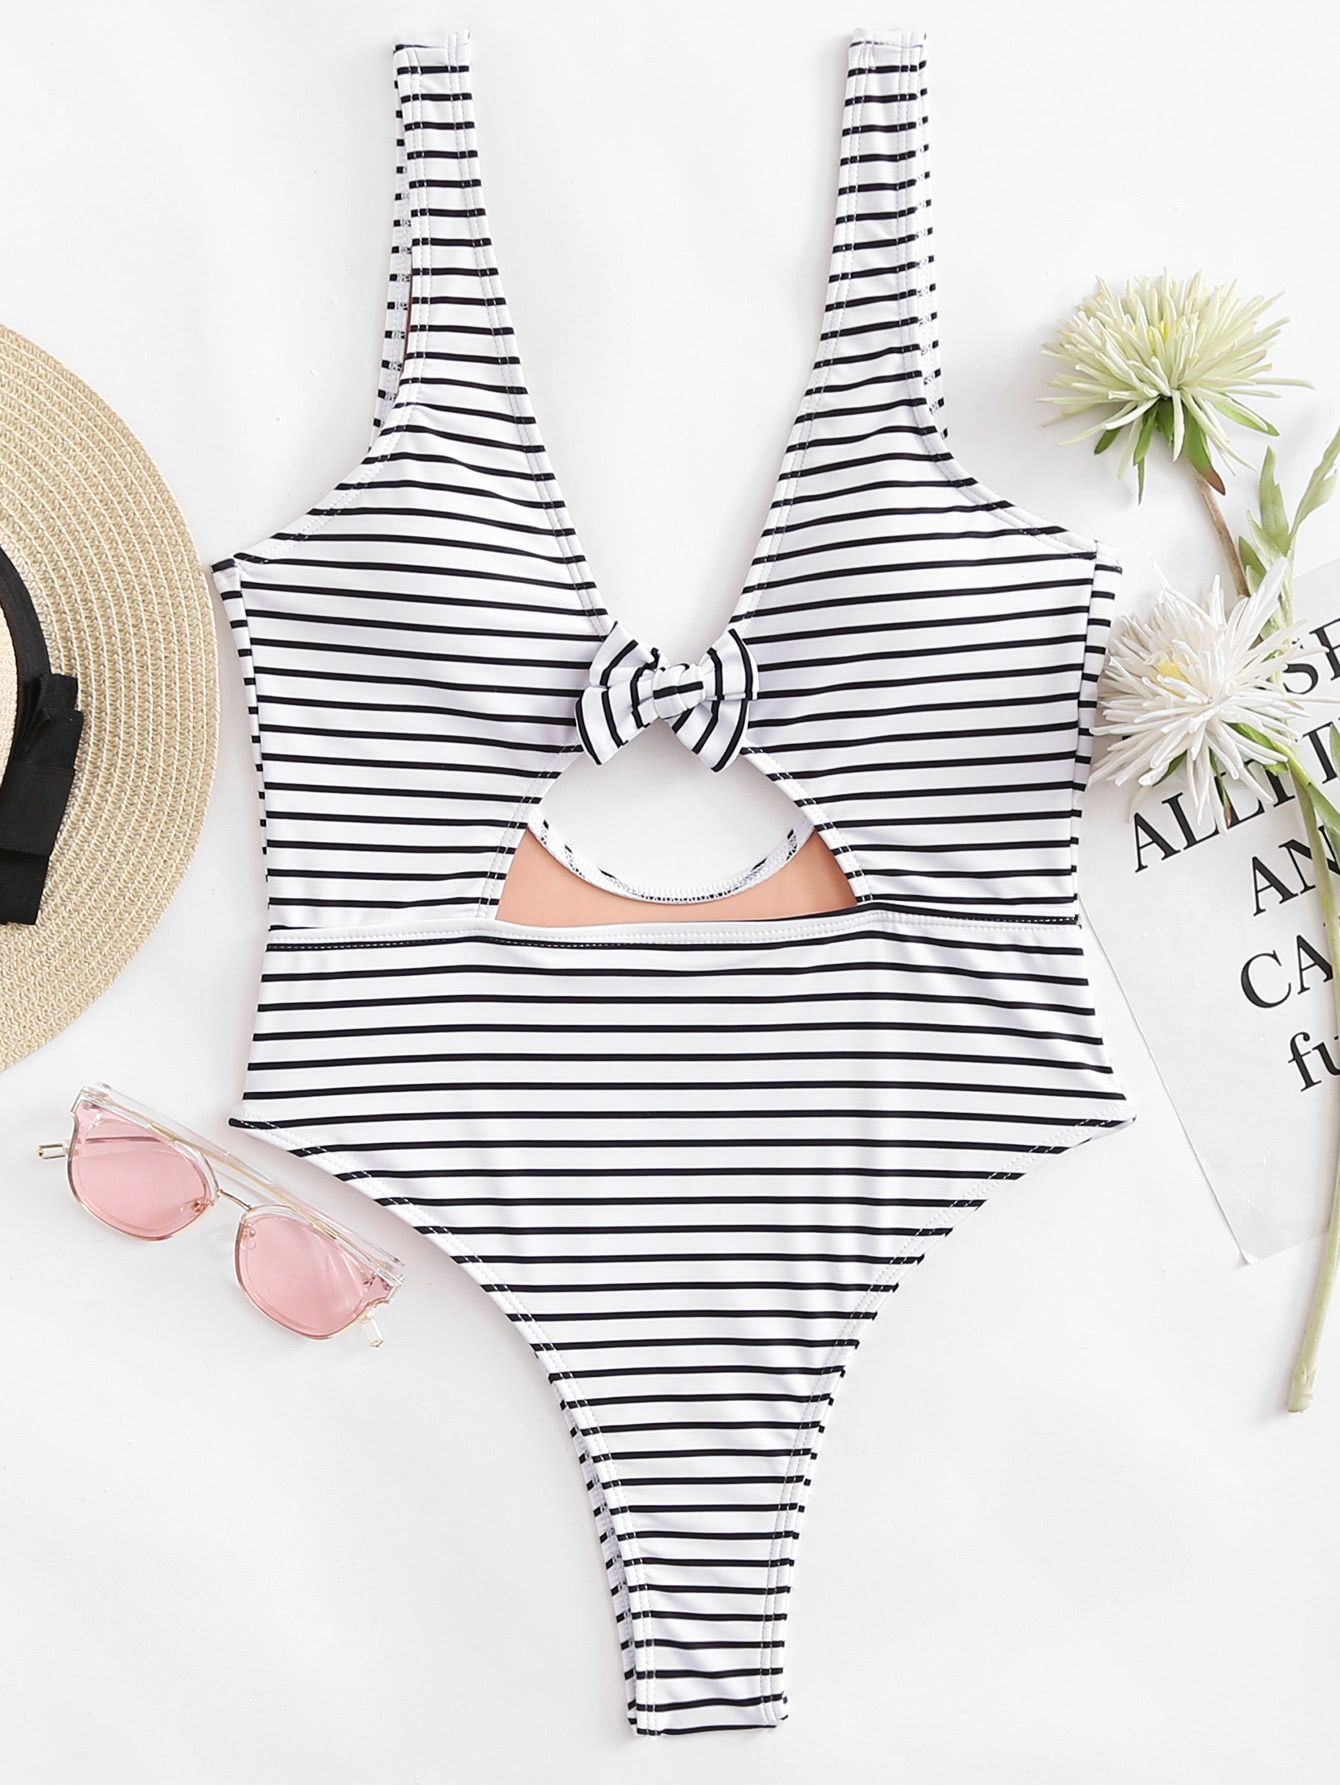 ae8fcb864af9a Shop Bow Tie Striped Swimsuit online. SheIn offers Bow Tie Striped Swimsuit  & more to fit your fashionable needs.